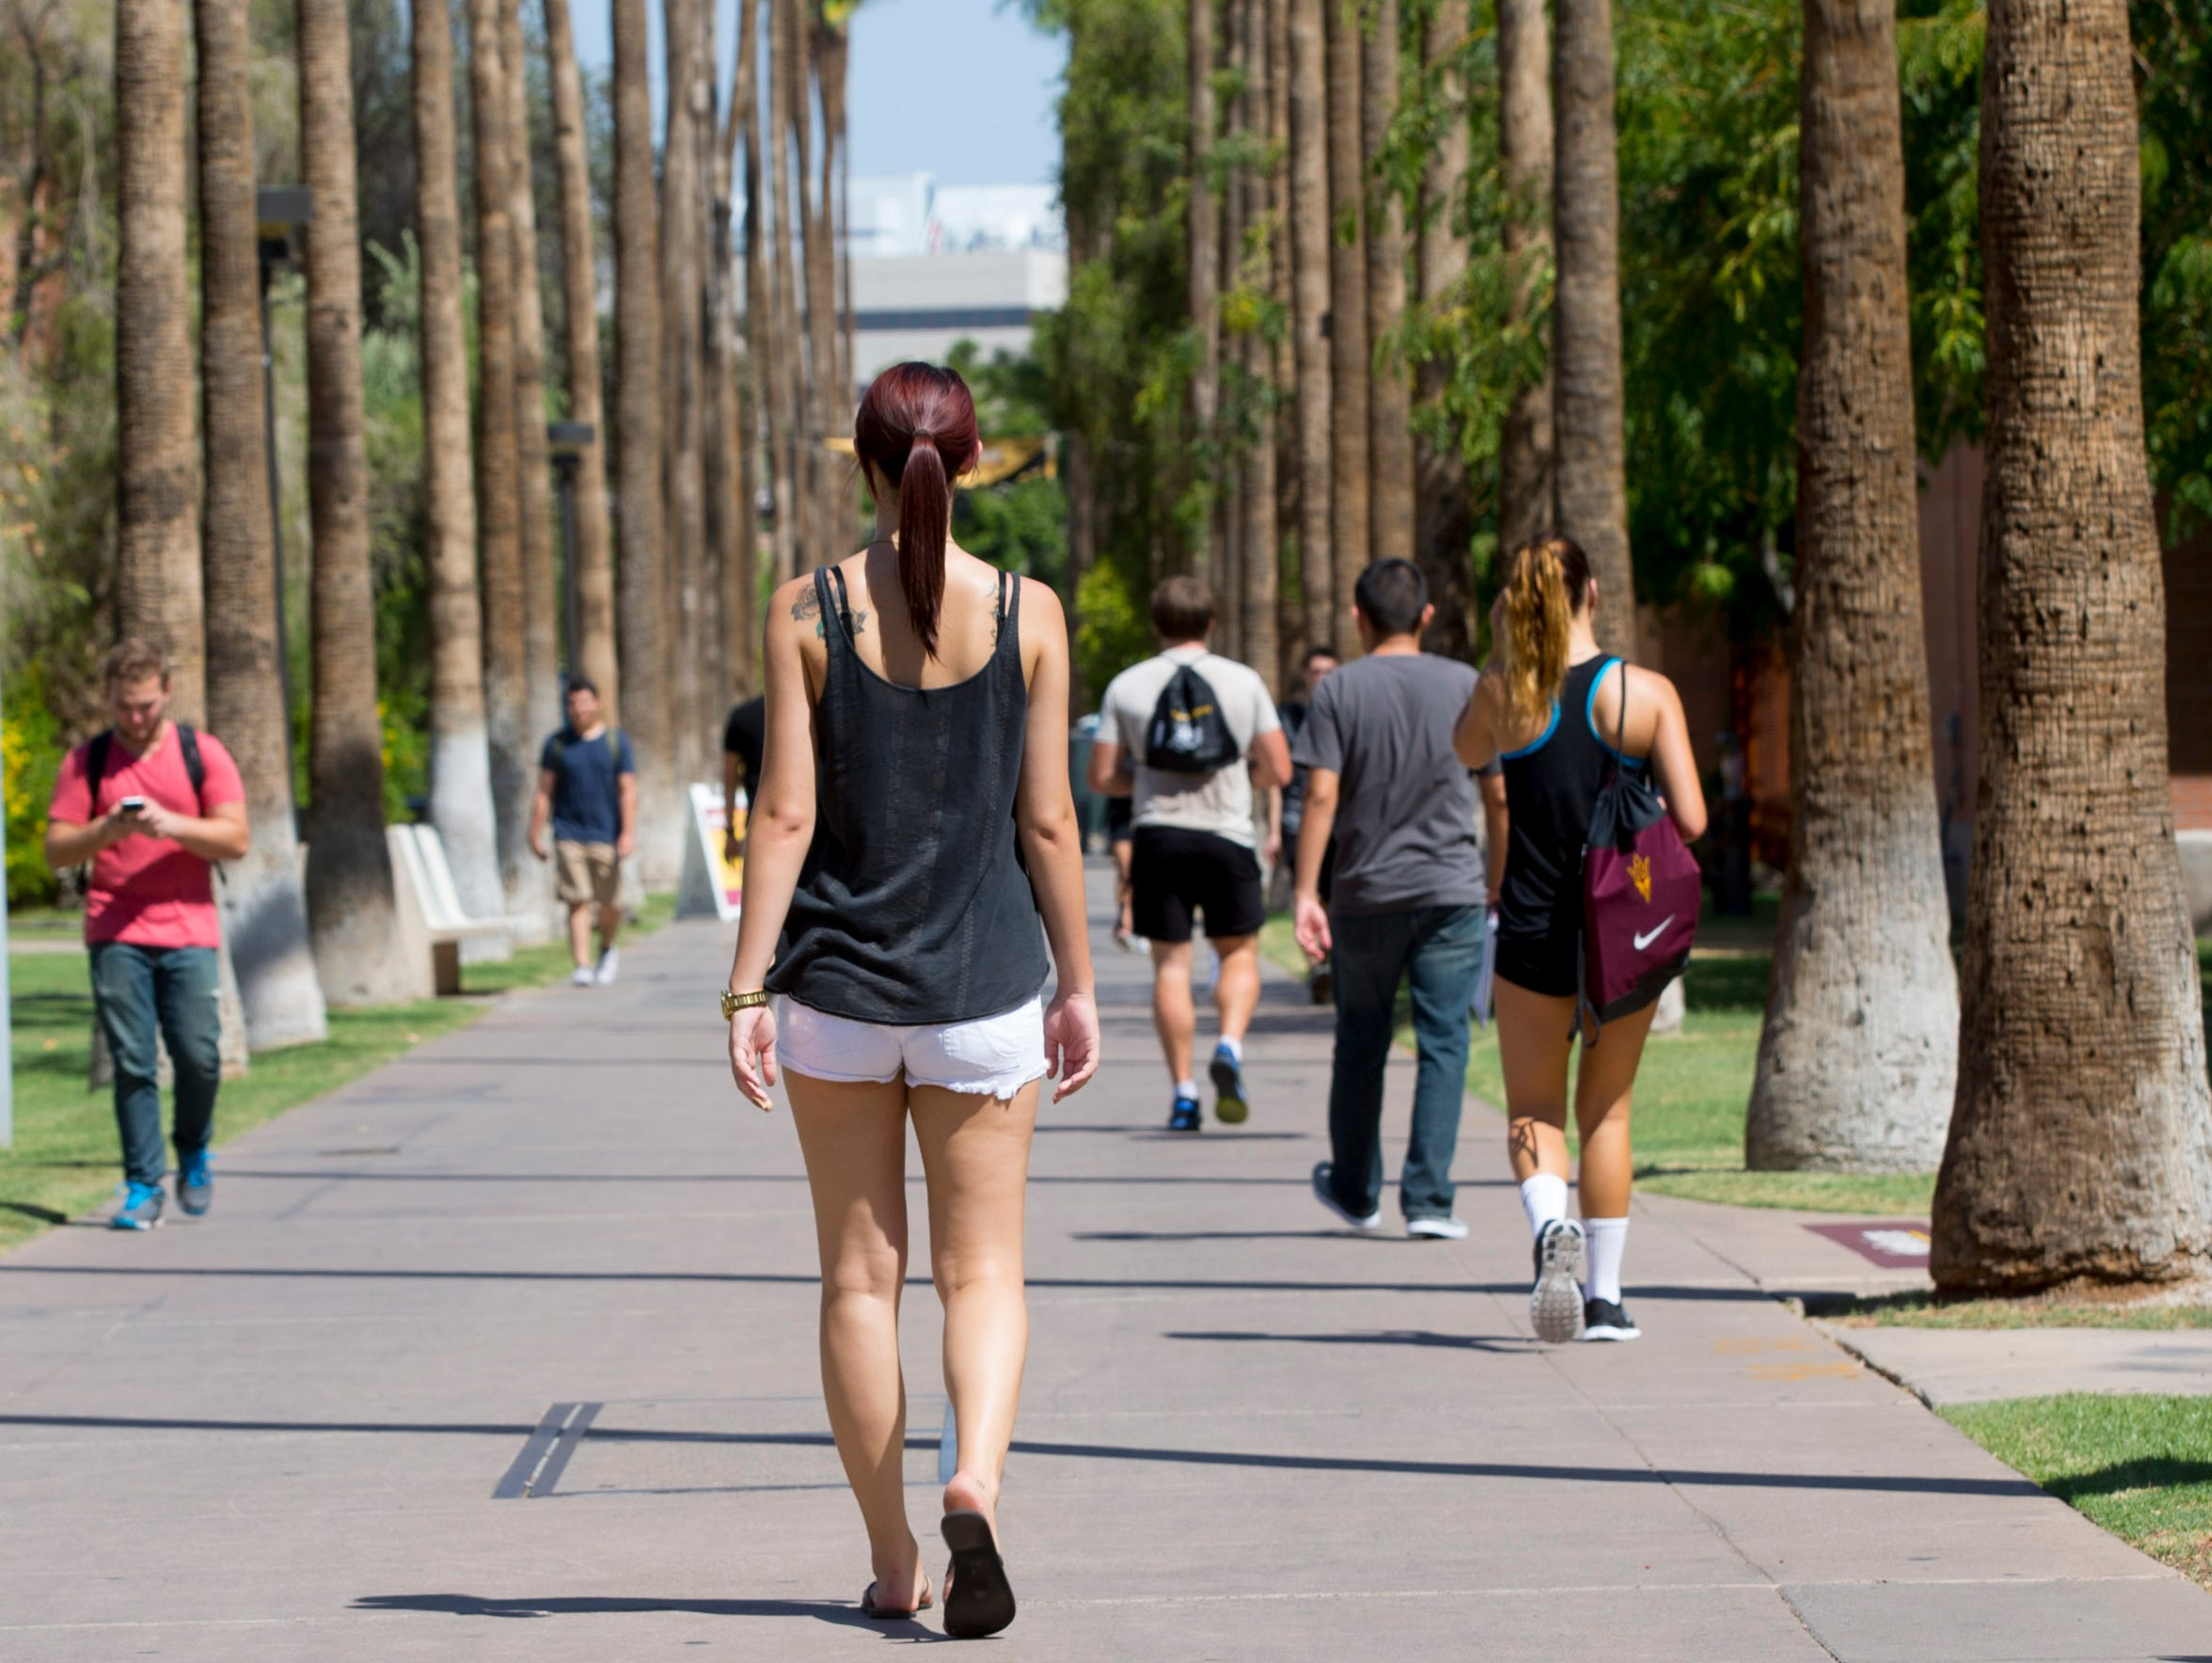 ASU student Alexandra filed a report with Tempe Police